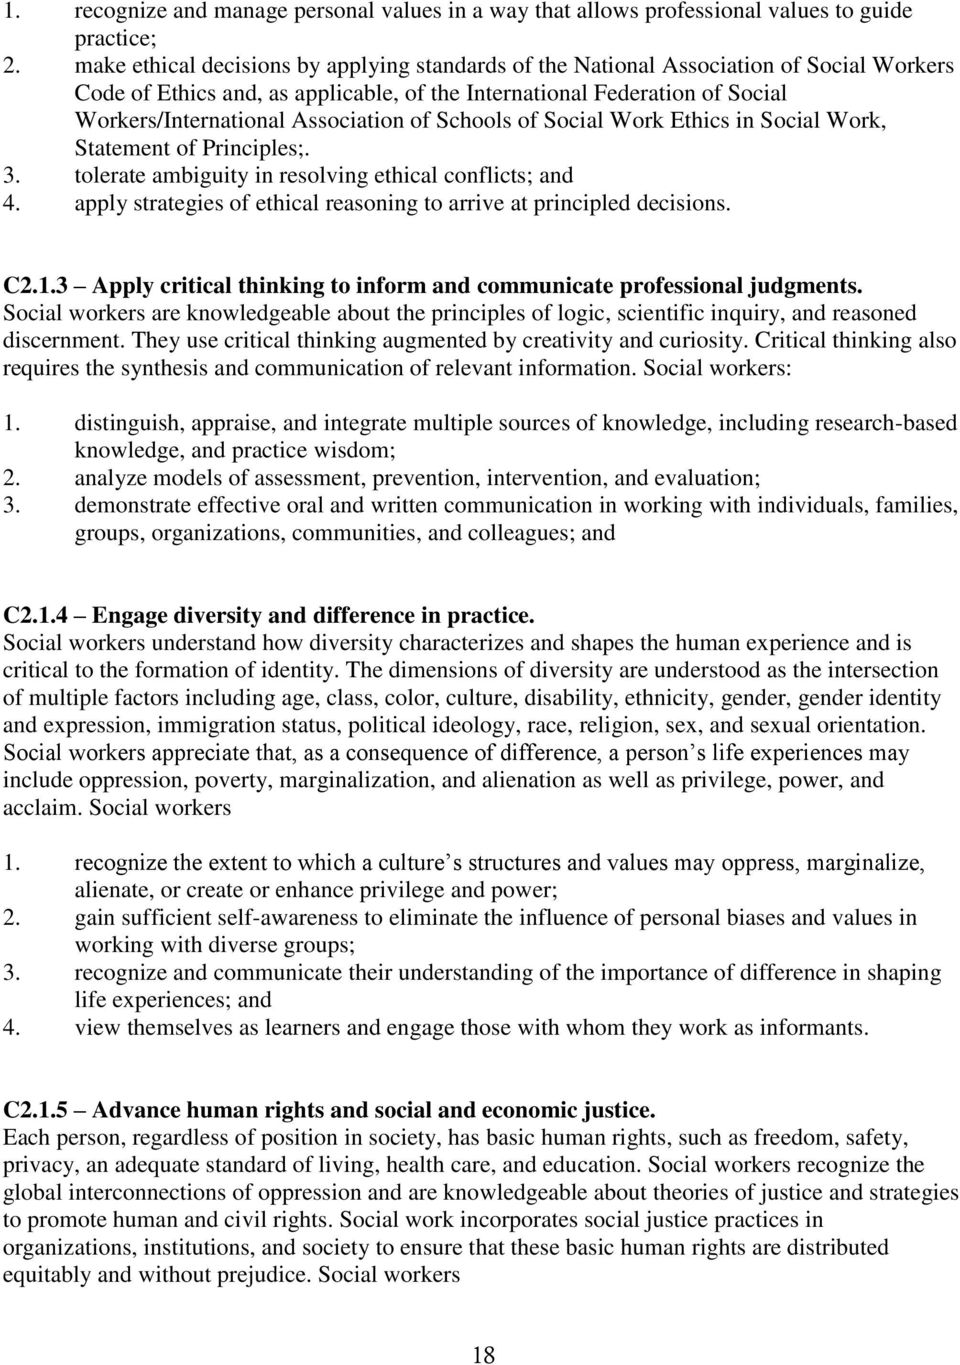 Association of Schools of Social Work Ethics in Social Work, Statement of Principles;. 3. tolerate ambiguity in resolving ethical conflicts; and 4.